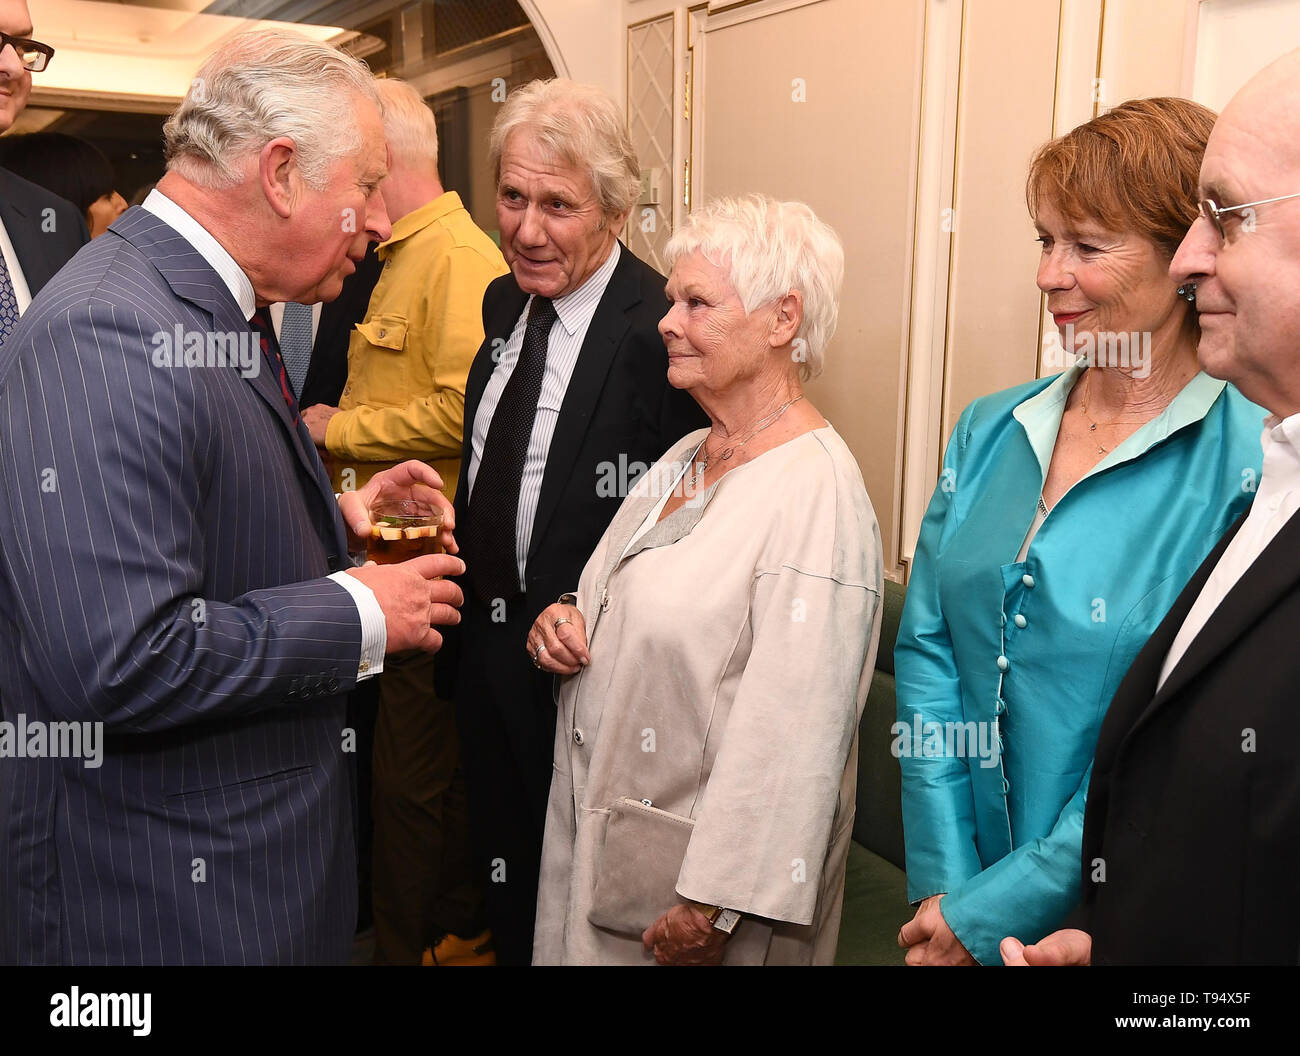 The Prince of Wales talks with Dame Judi Dench and her partner David Mills, watched by Celia Imrie at the annual Fortnum & Mason Food and Drink Awards at Fortnum & Mason, central London. - Stock Image